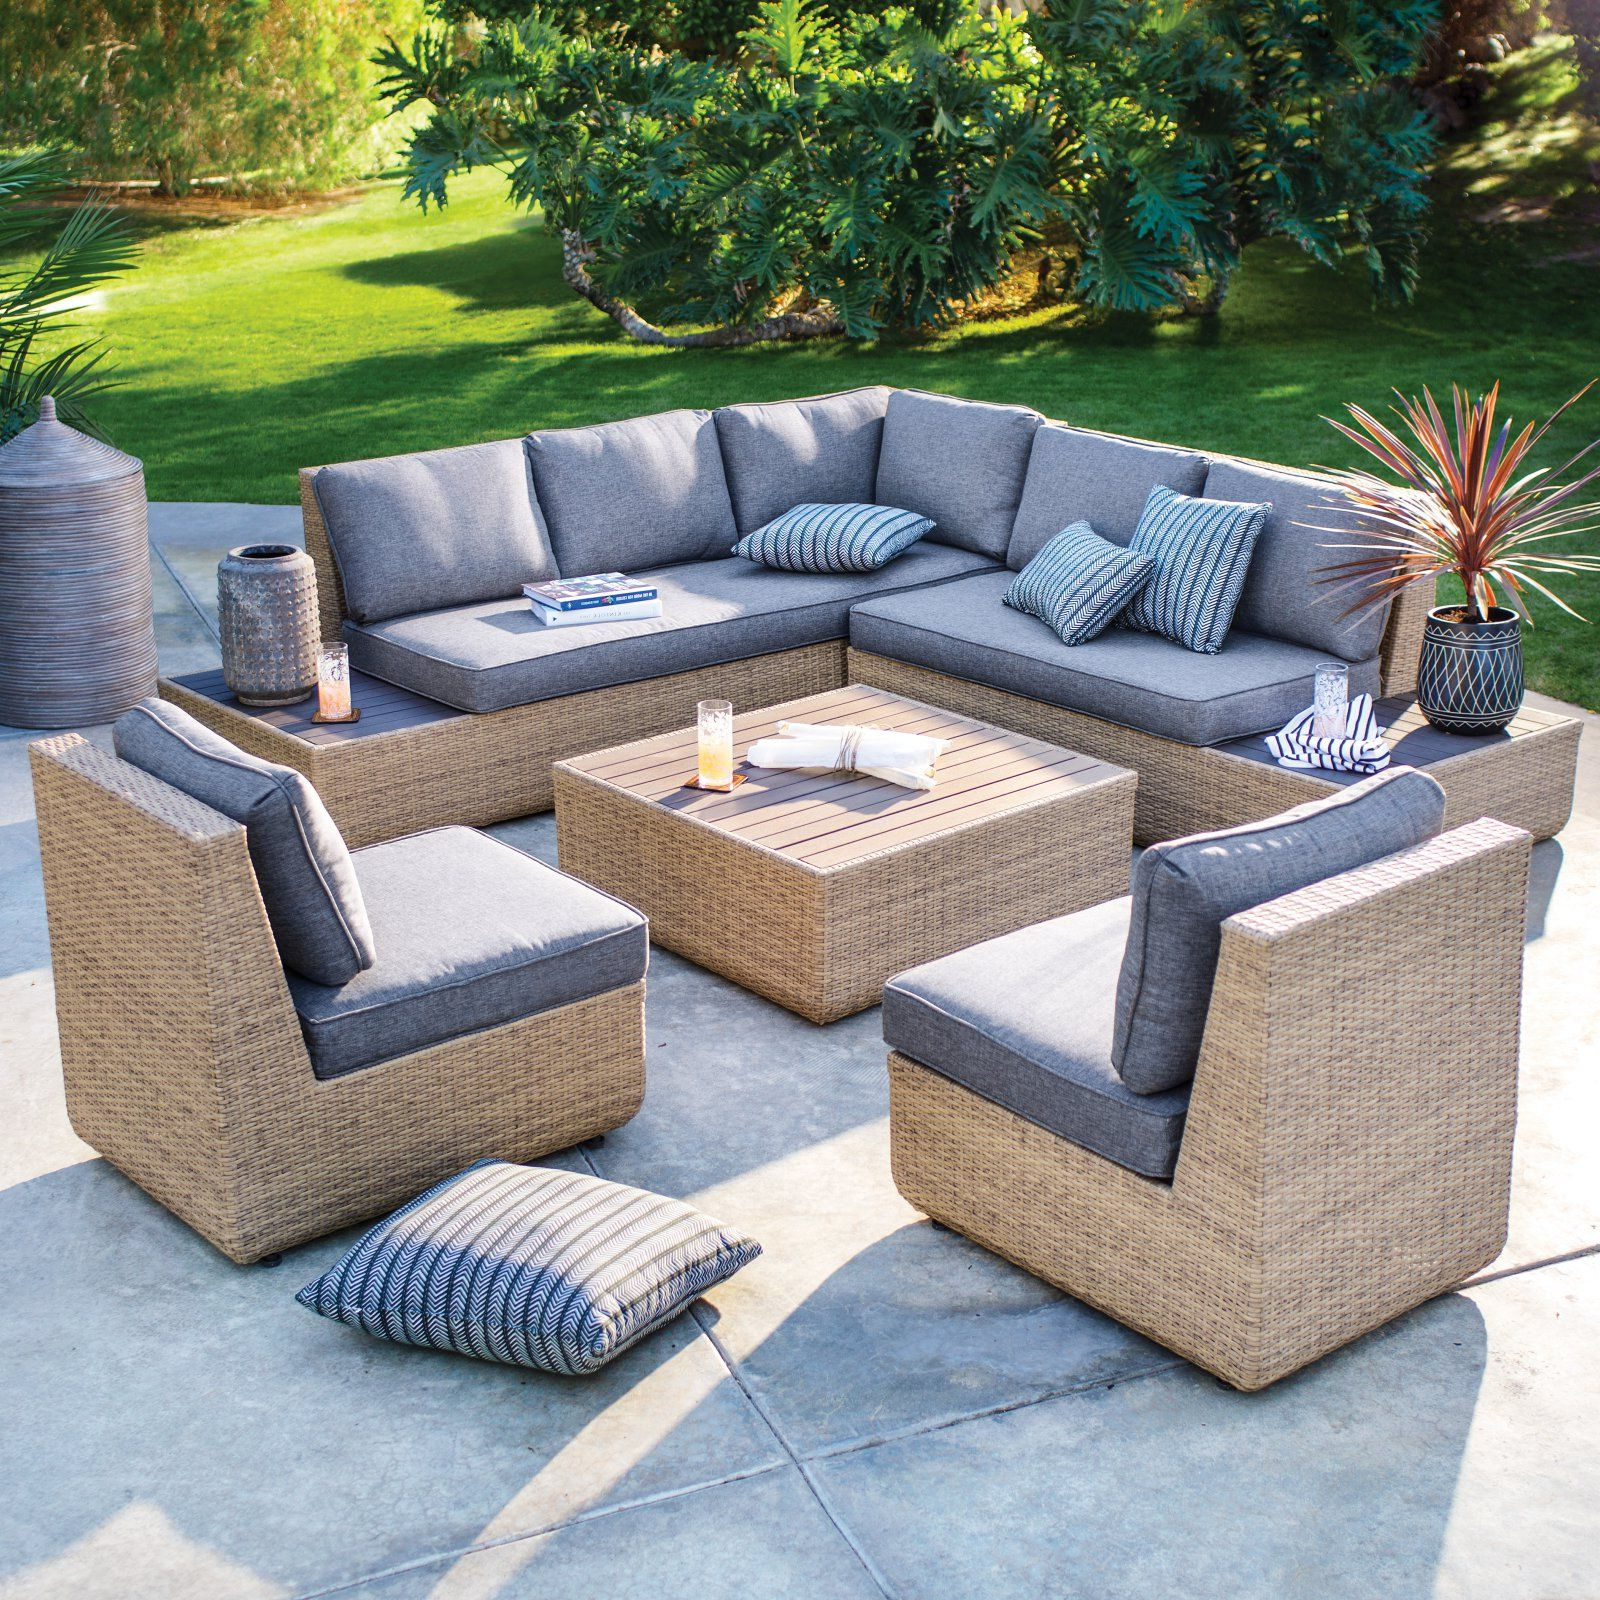 Outdoor Belham Living Luciana Villa All Weather 5 Piece Throughout Popular Rowley Patio Sofas Set With Cushions (View 8 of 20)